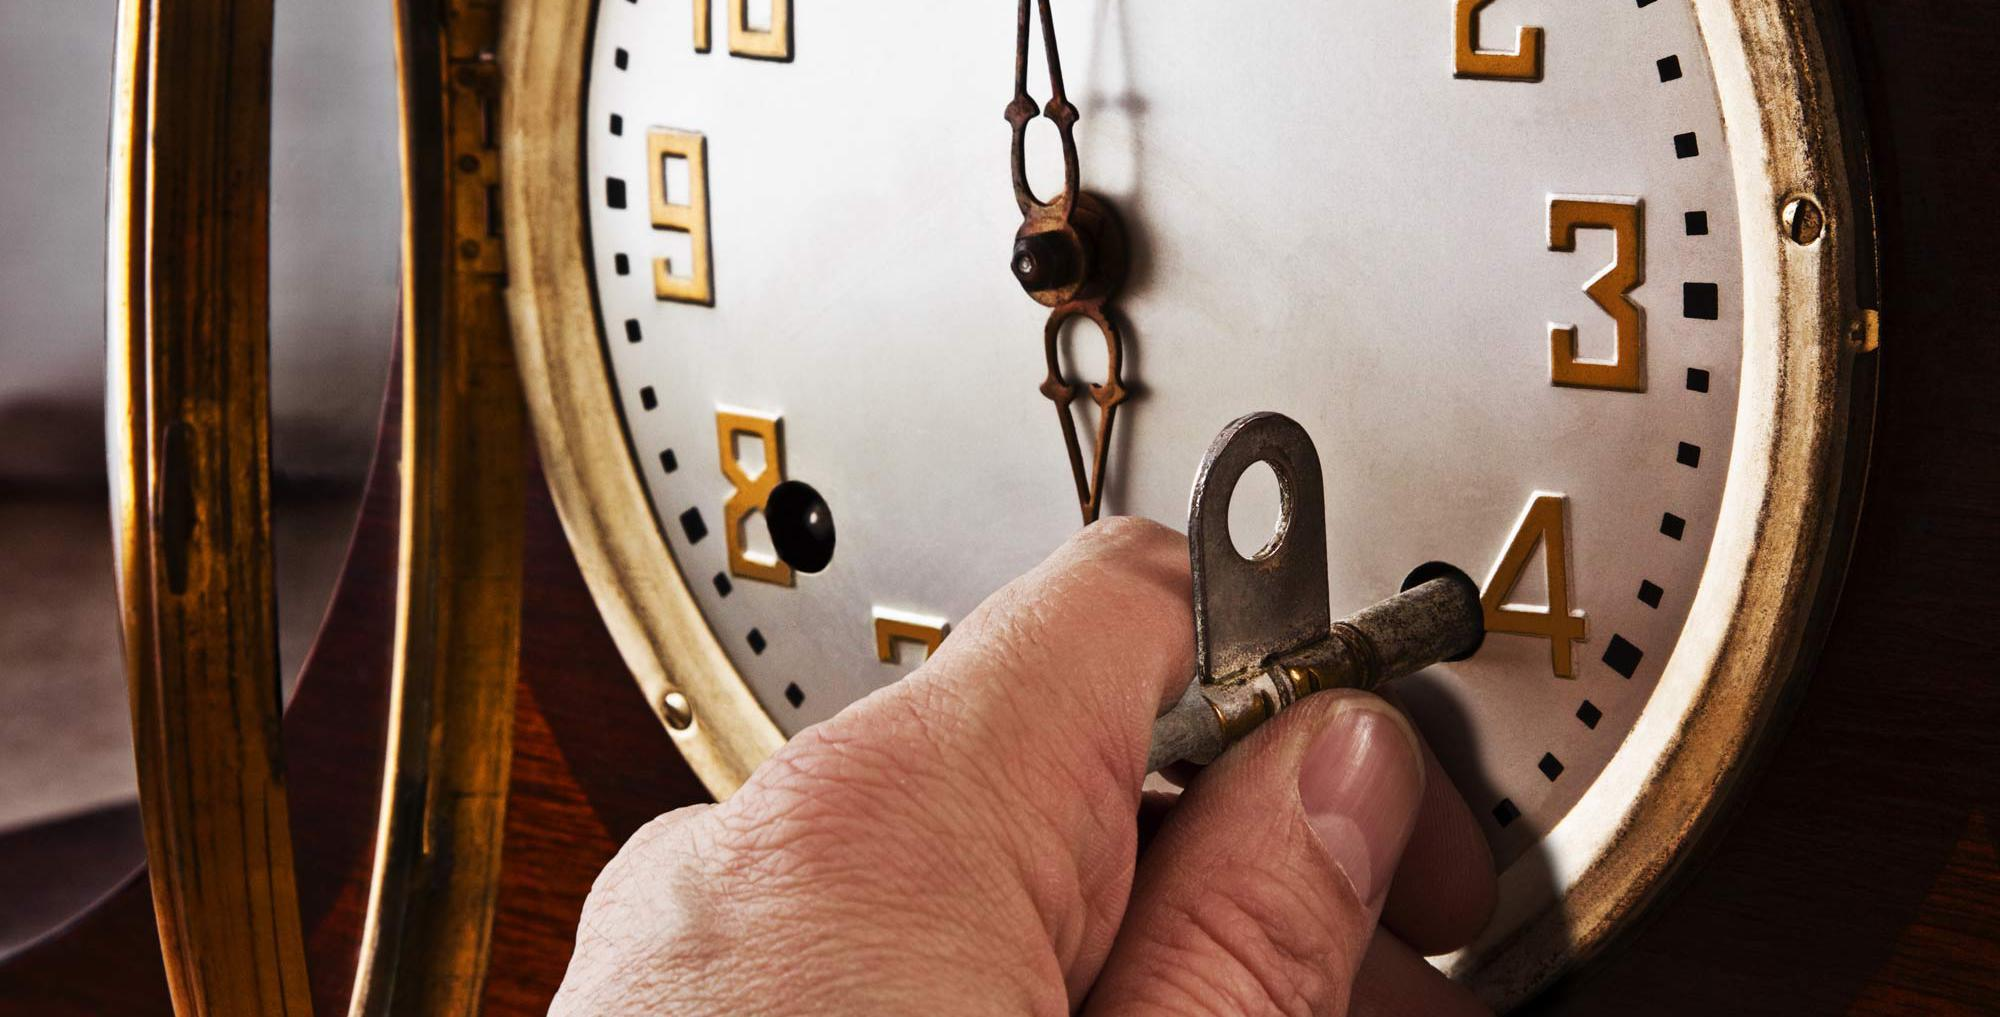 Winding key clock repair and quality maintenance services in Mason, OH